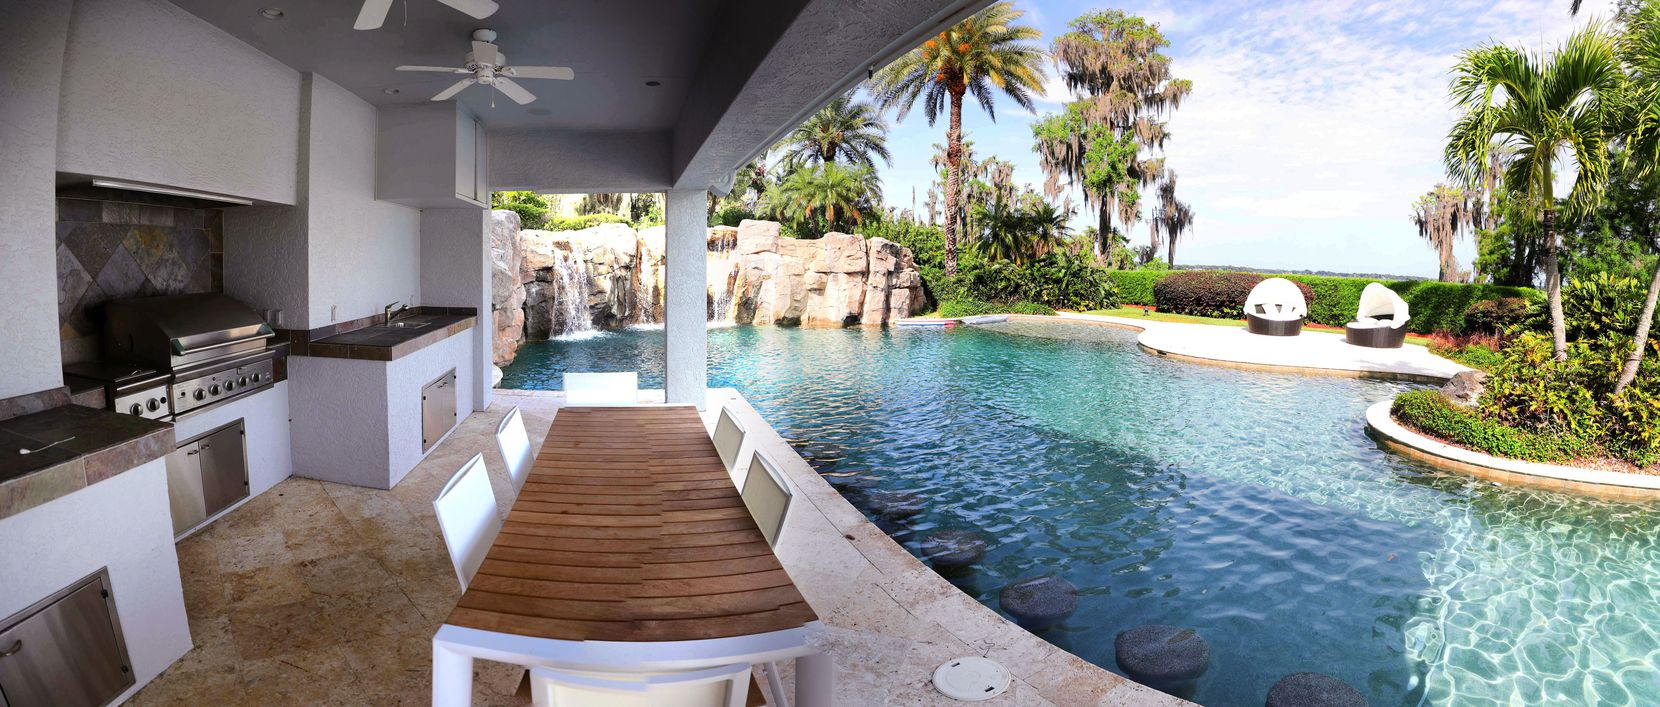 The 31,000 square foot home has a lagoon pool and an outdoor kitchen.